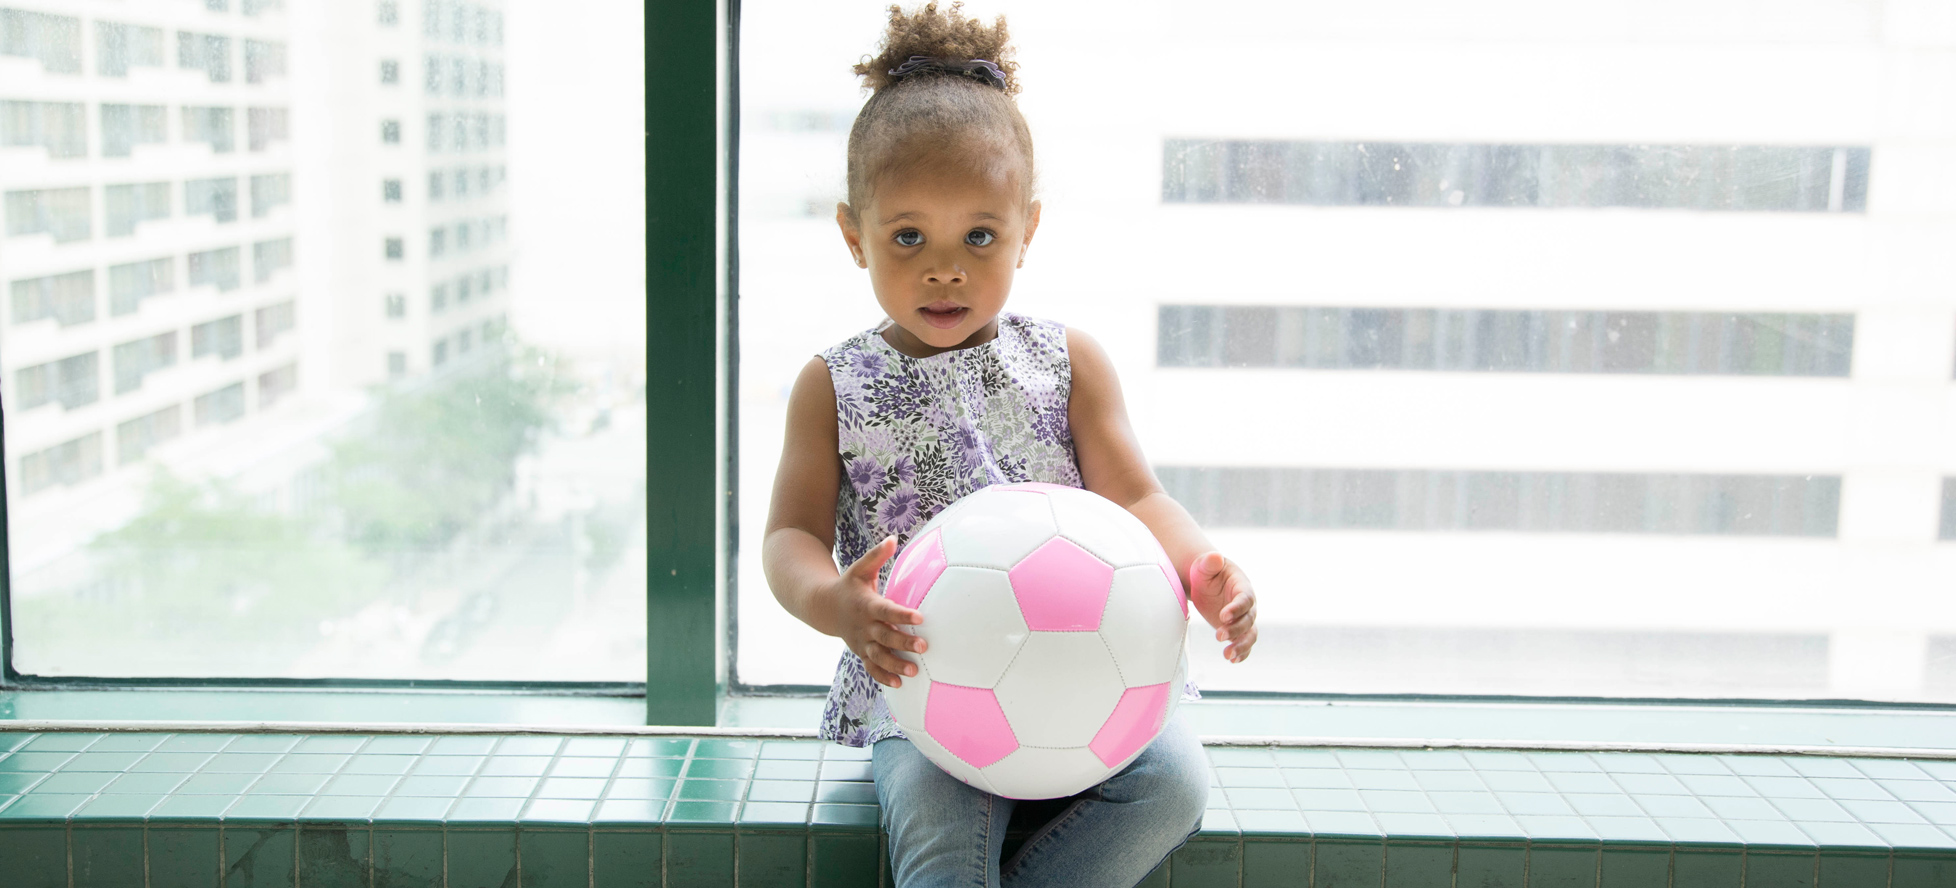 Girl sitting by window with pink soccer ball